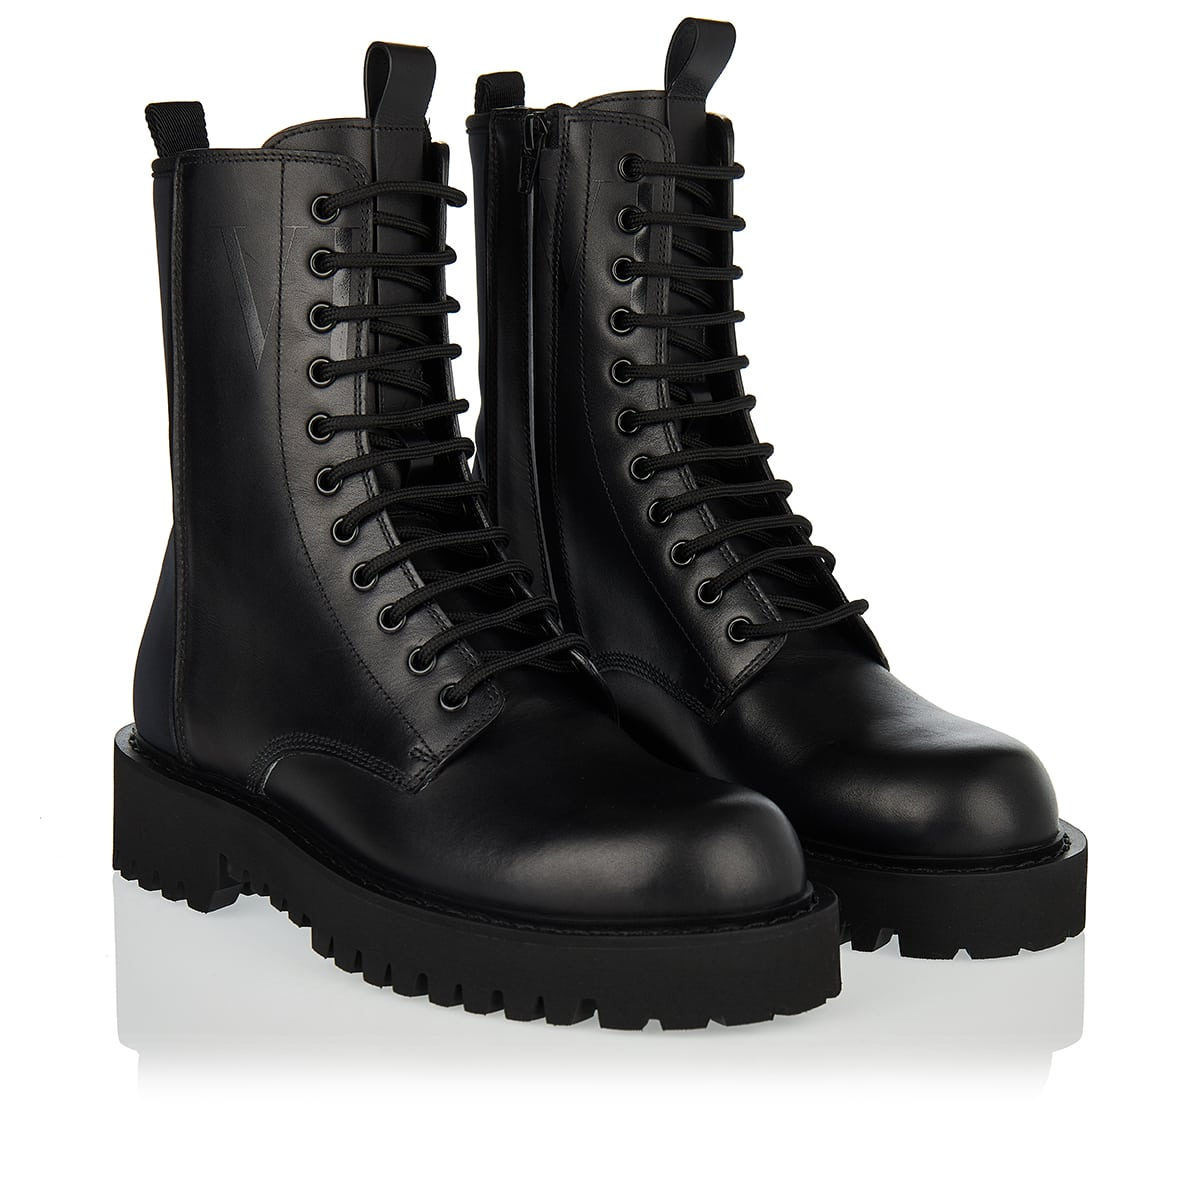 Neoprene and leather combat boots